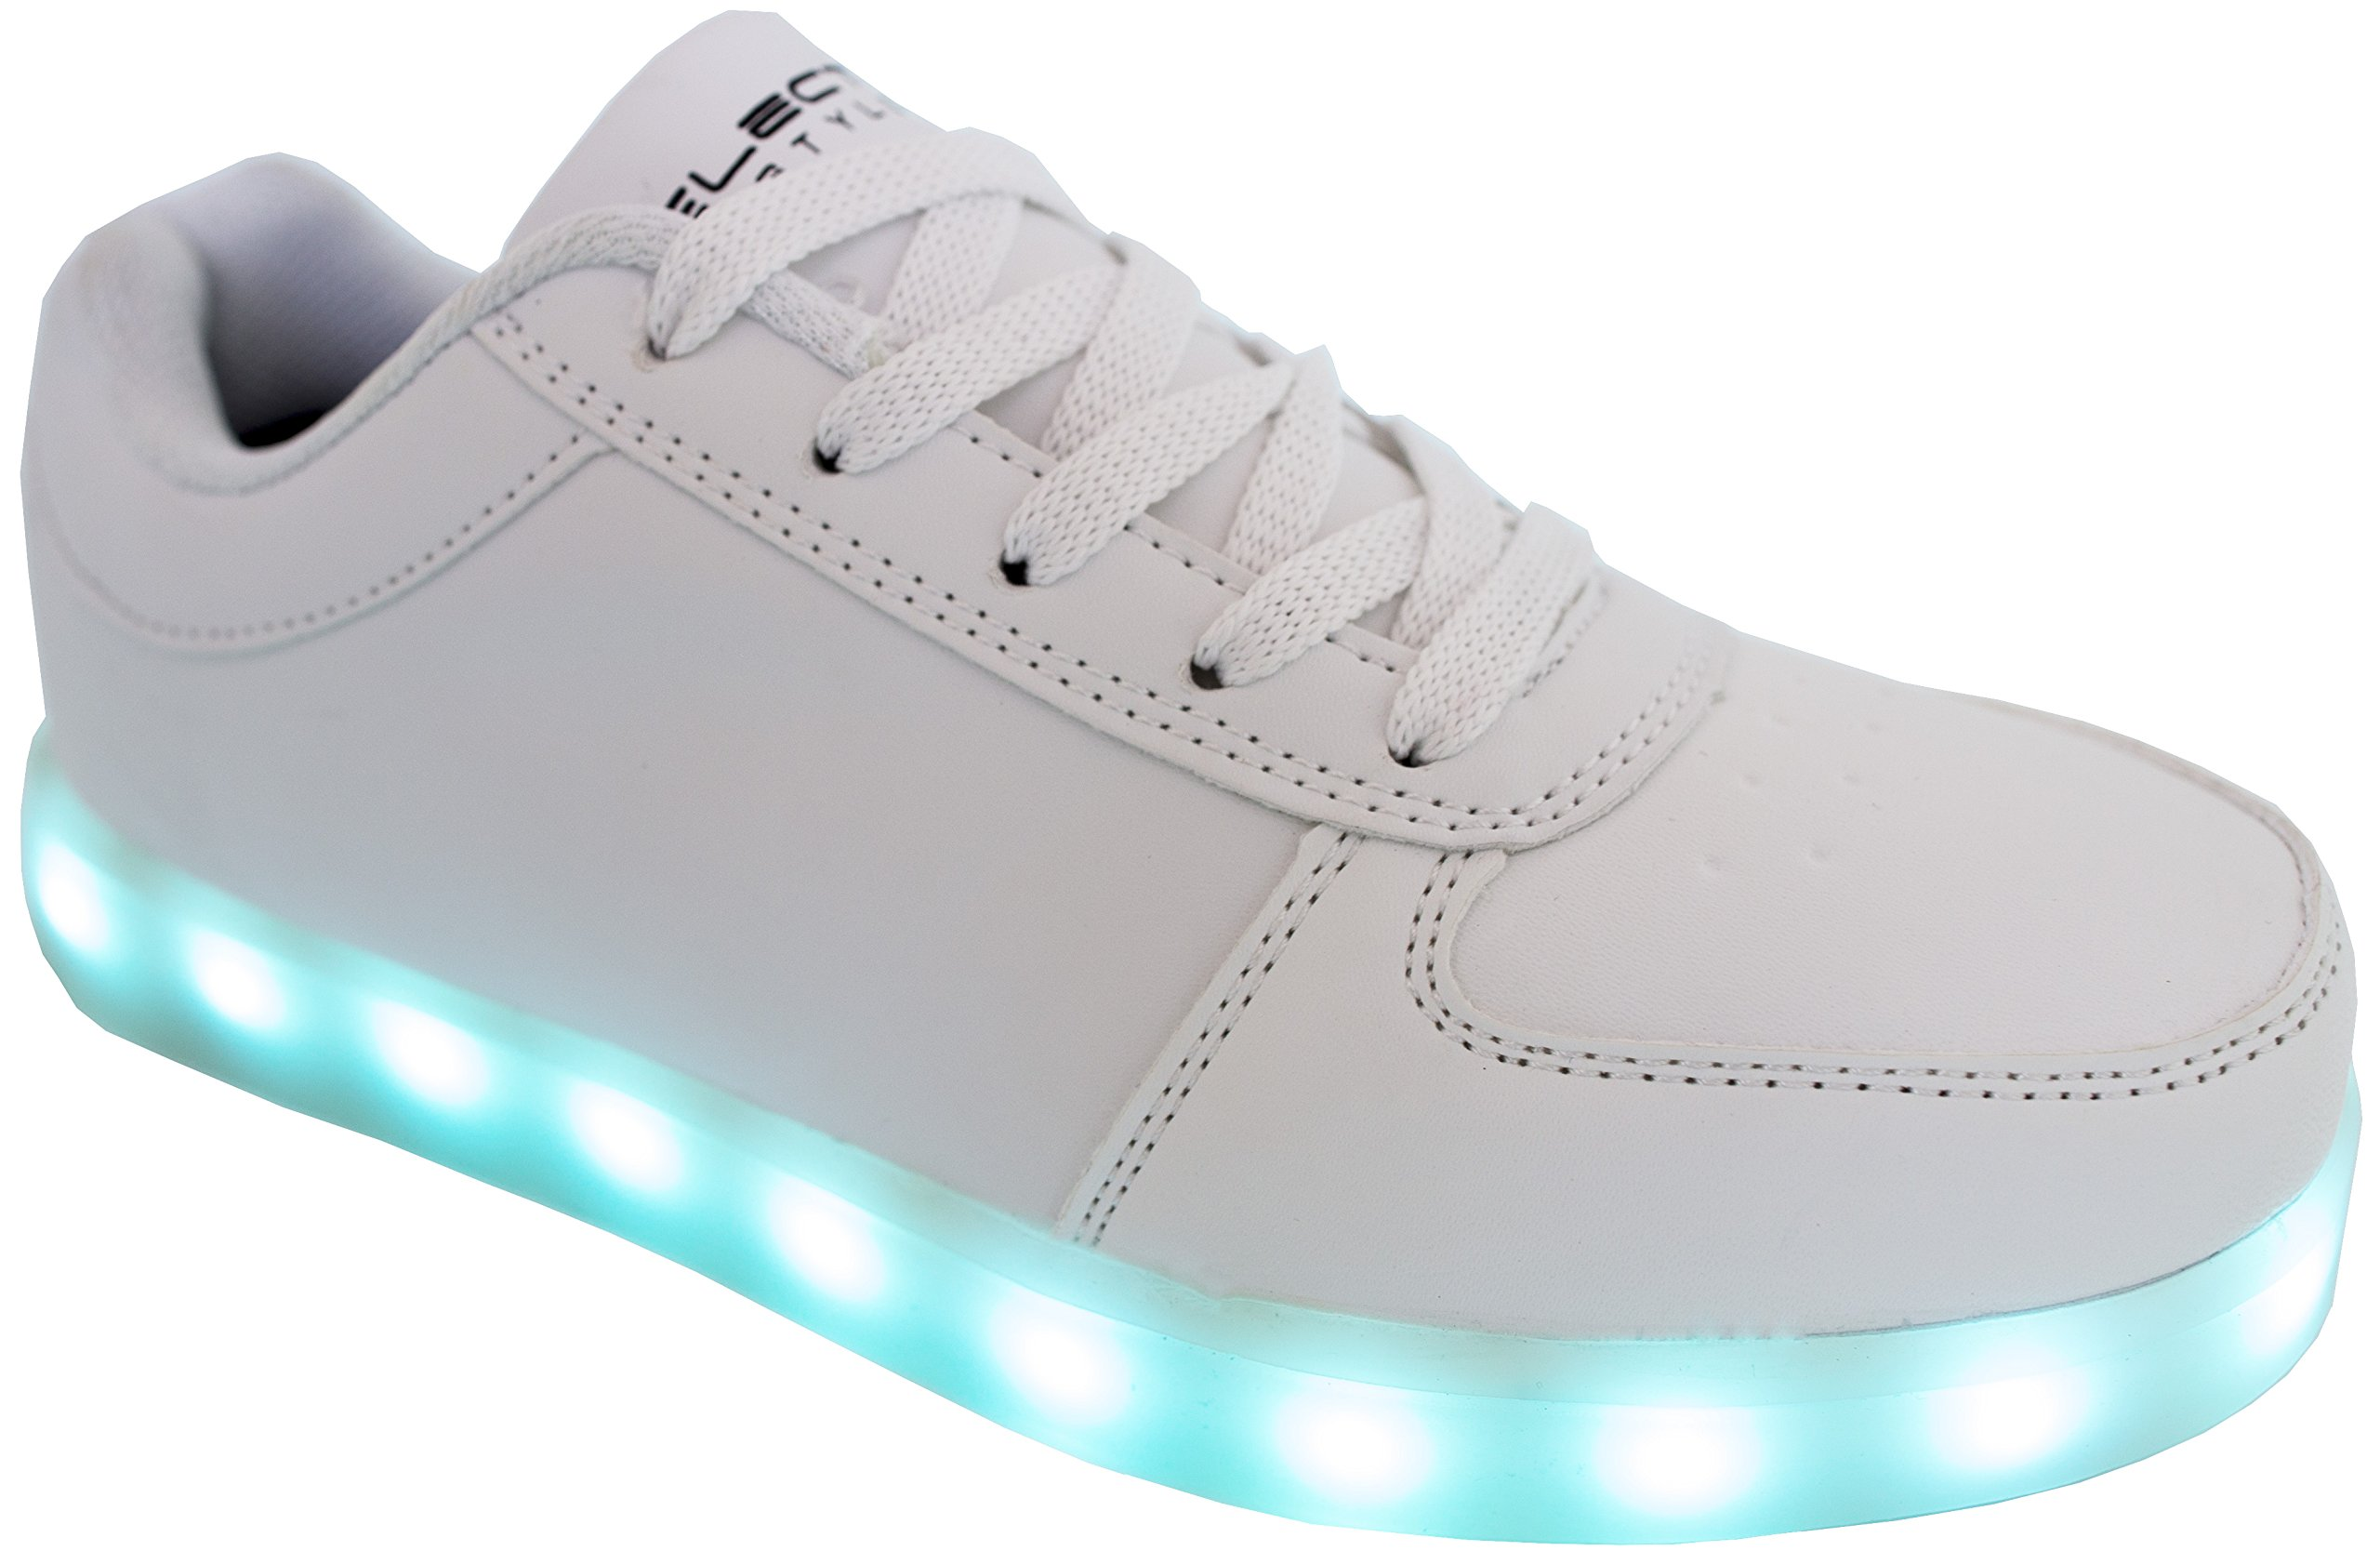 Light Up Shoes For Girls Nike